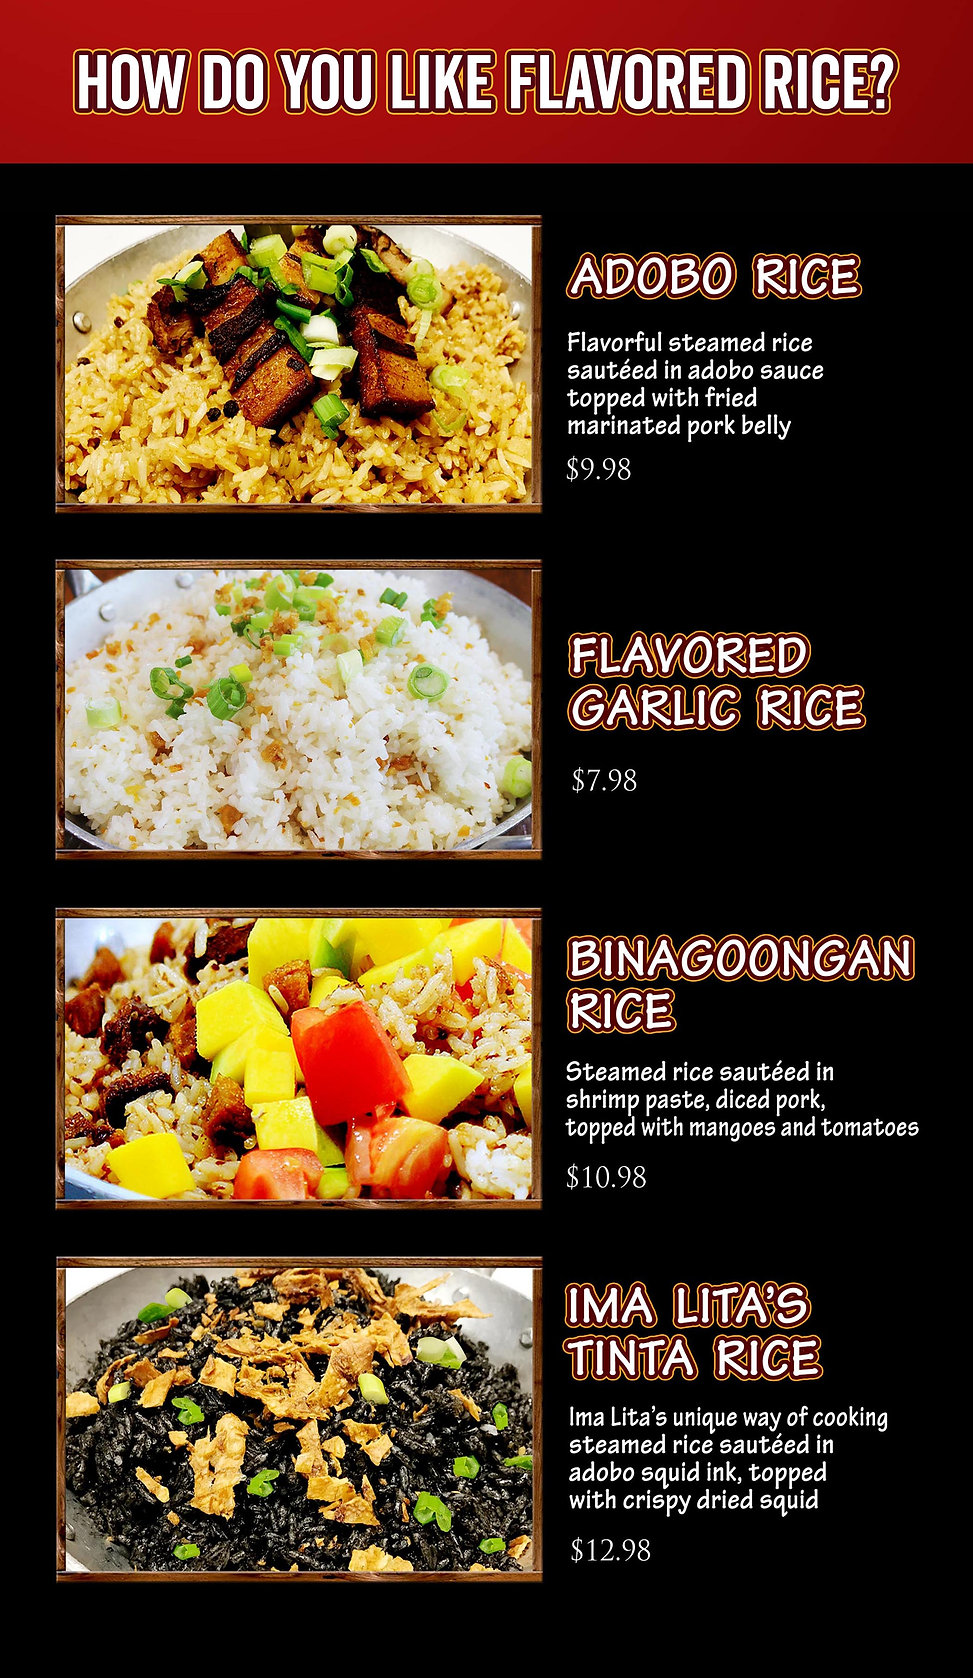 how do you like flavored rice.jpg